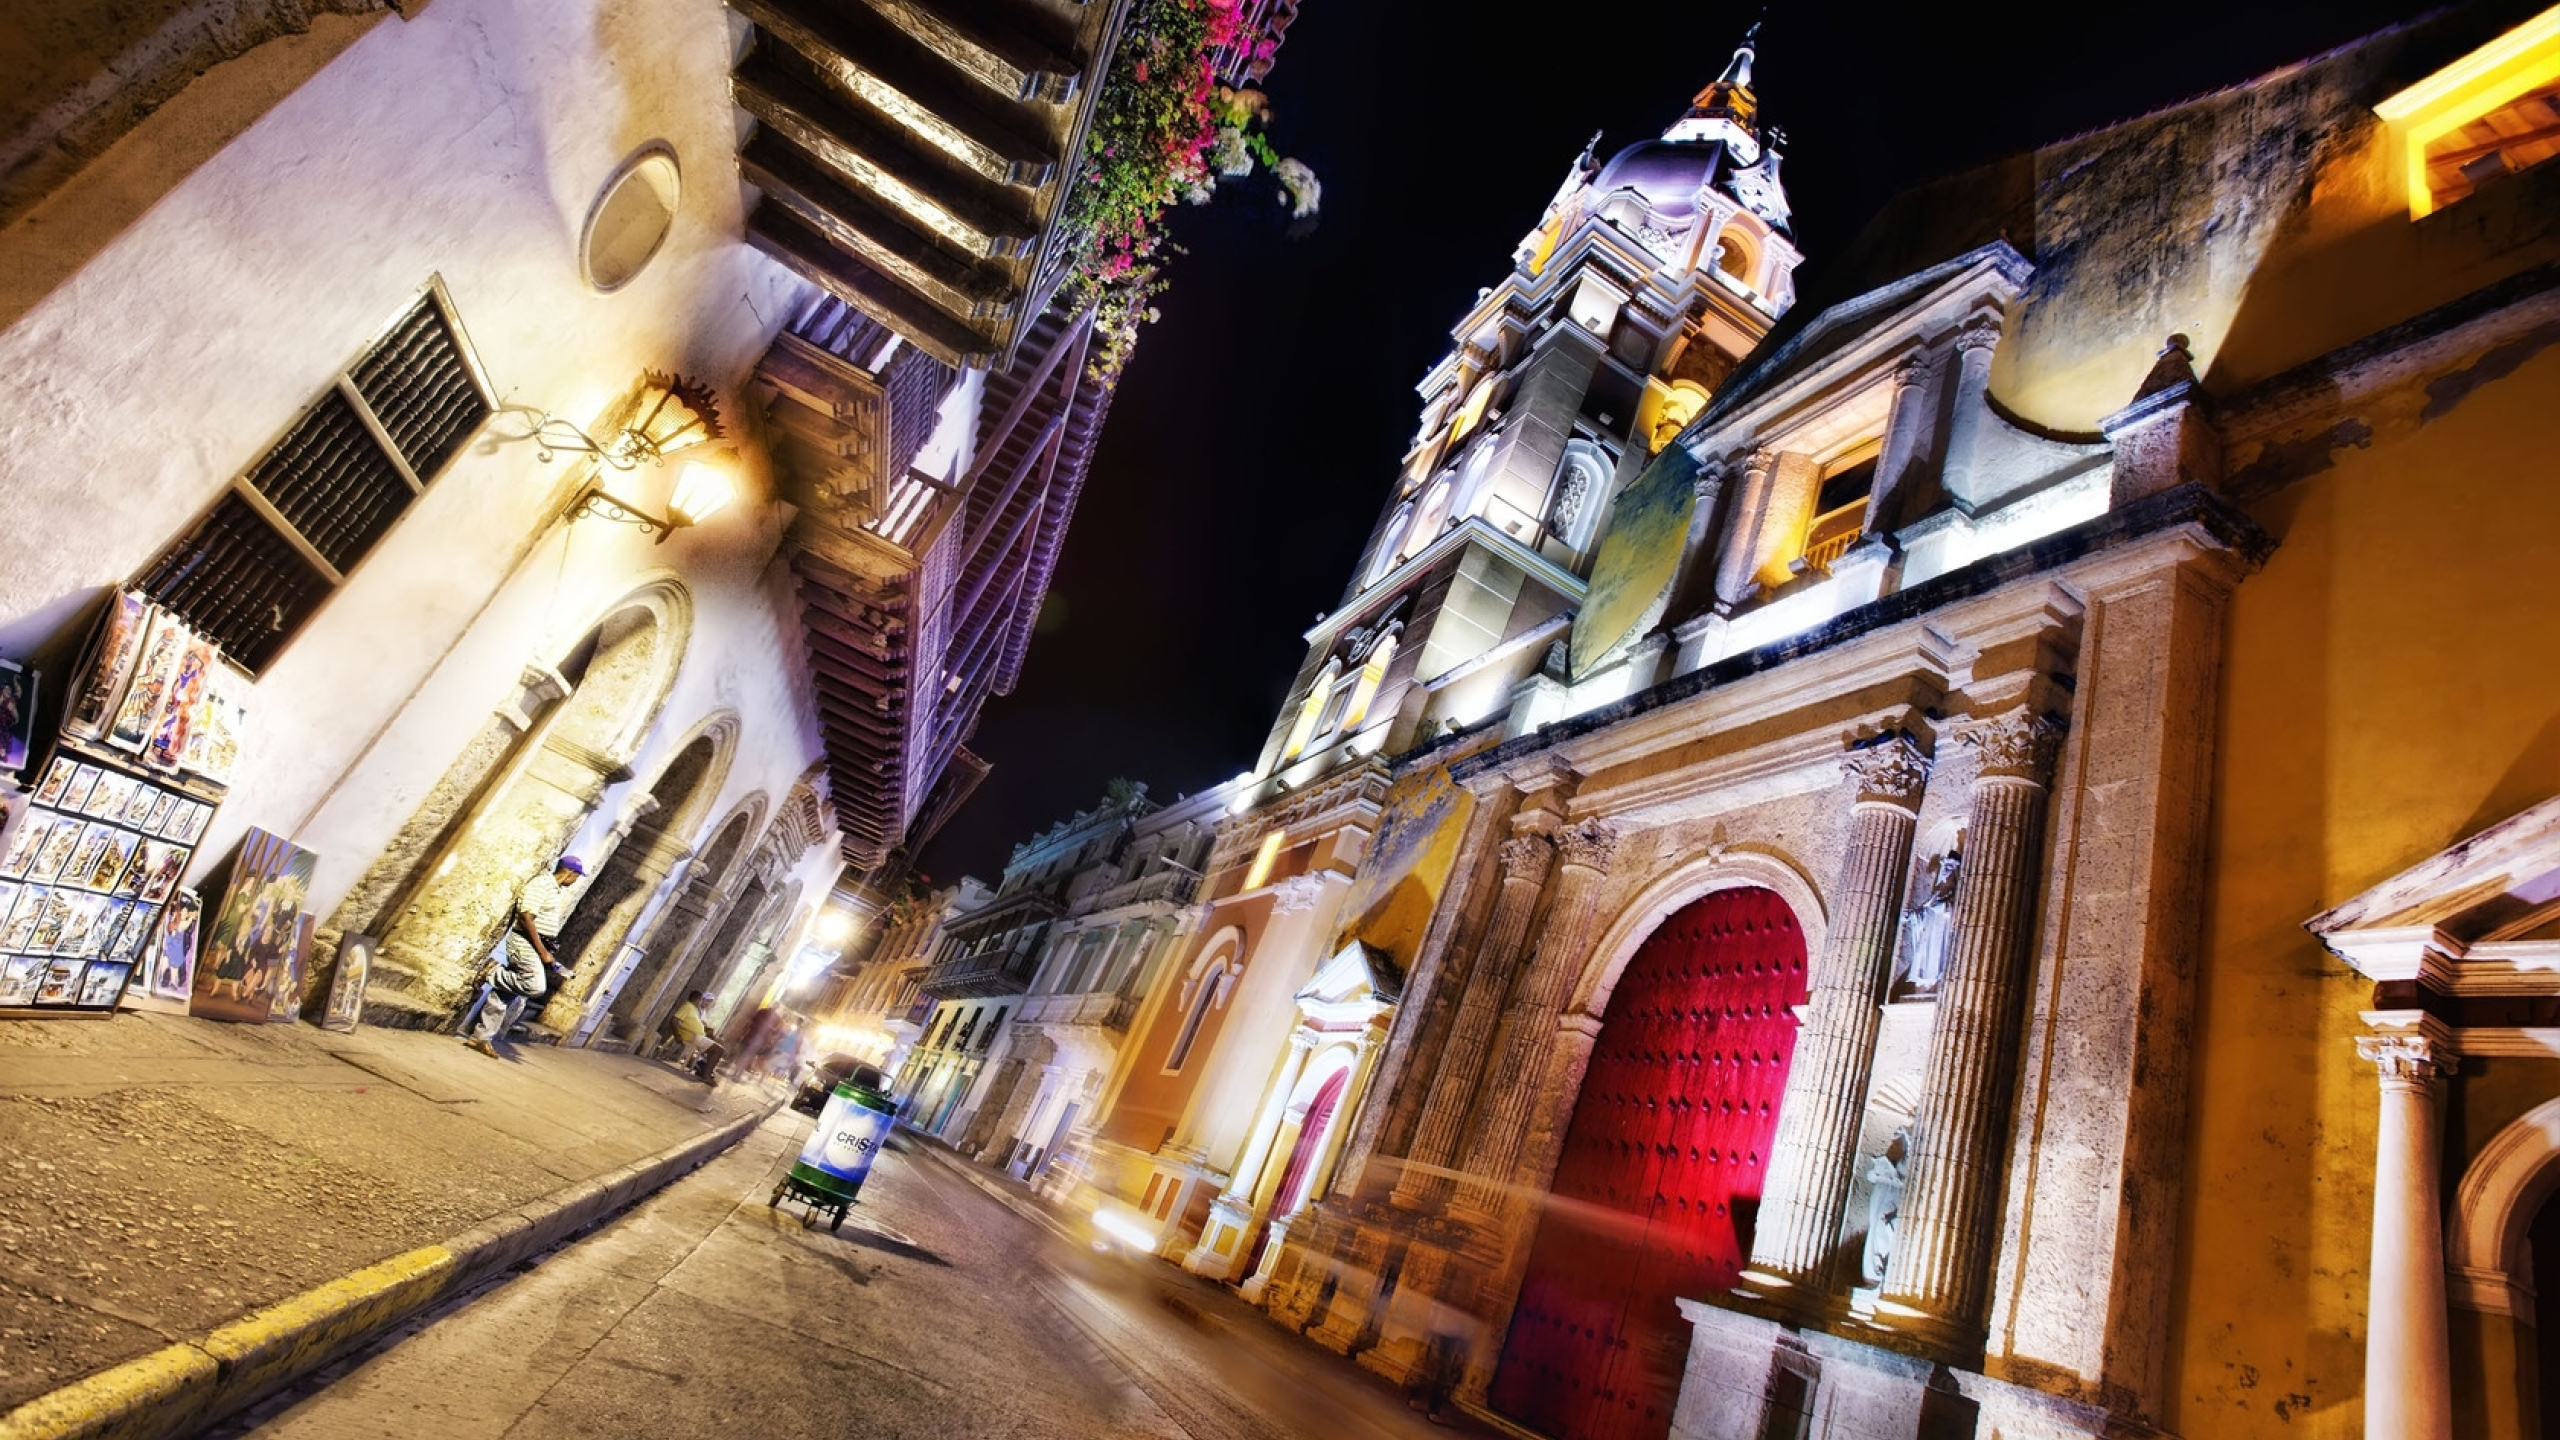 2560x1440 Cartagena Colombia Night 1440p Resolution Wallpaper Hd City 4k Wallpapers Images Photos And Background